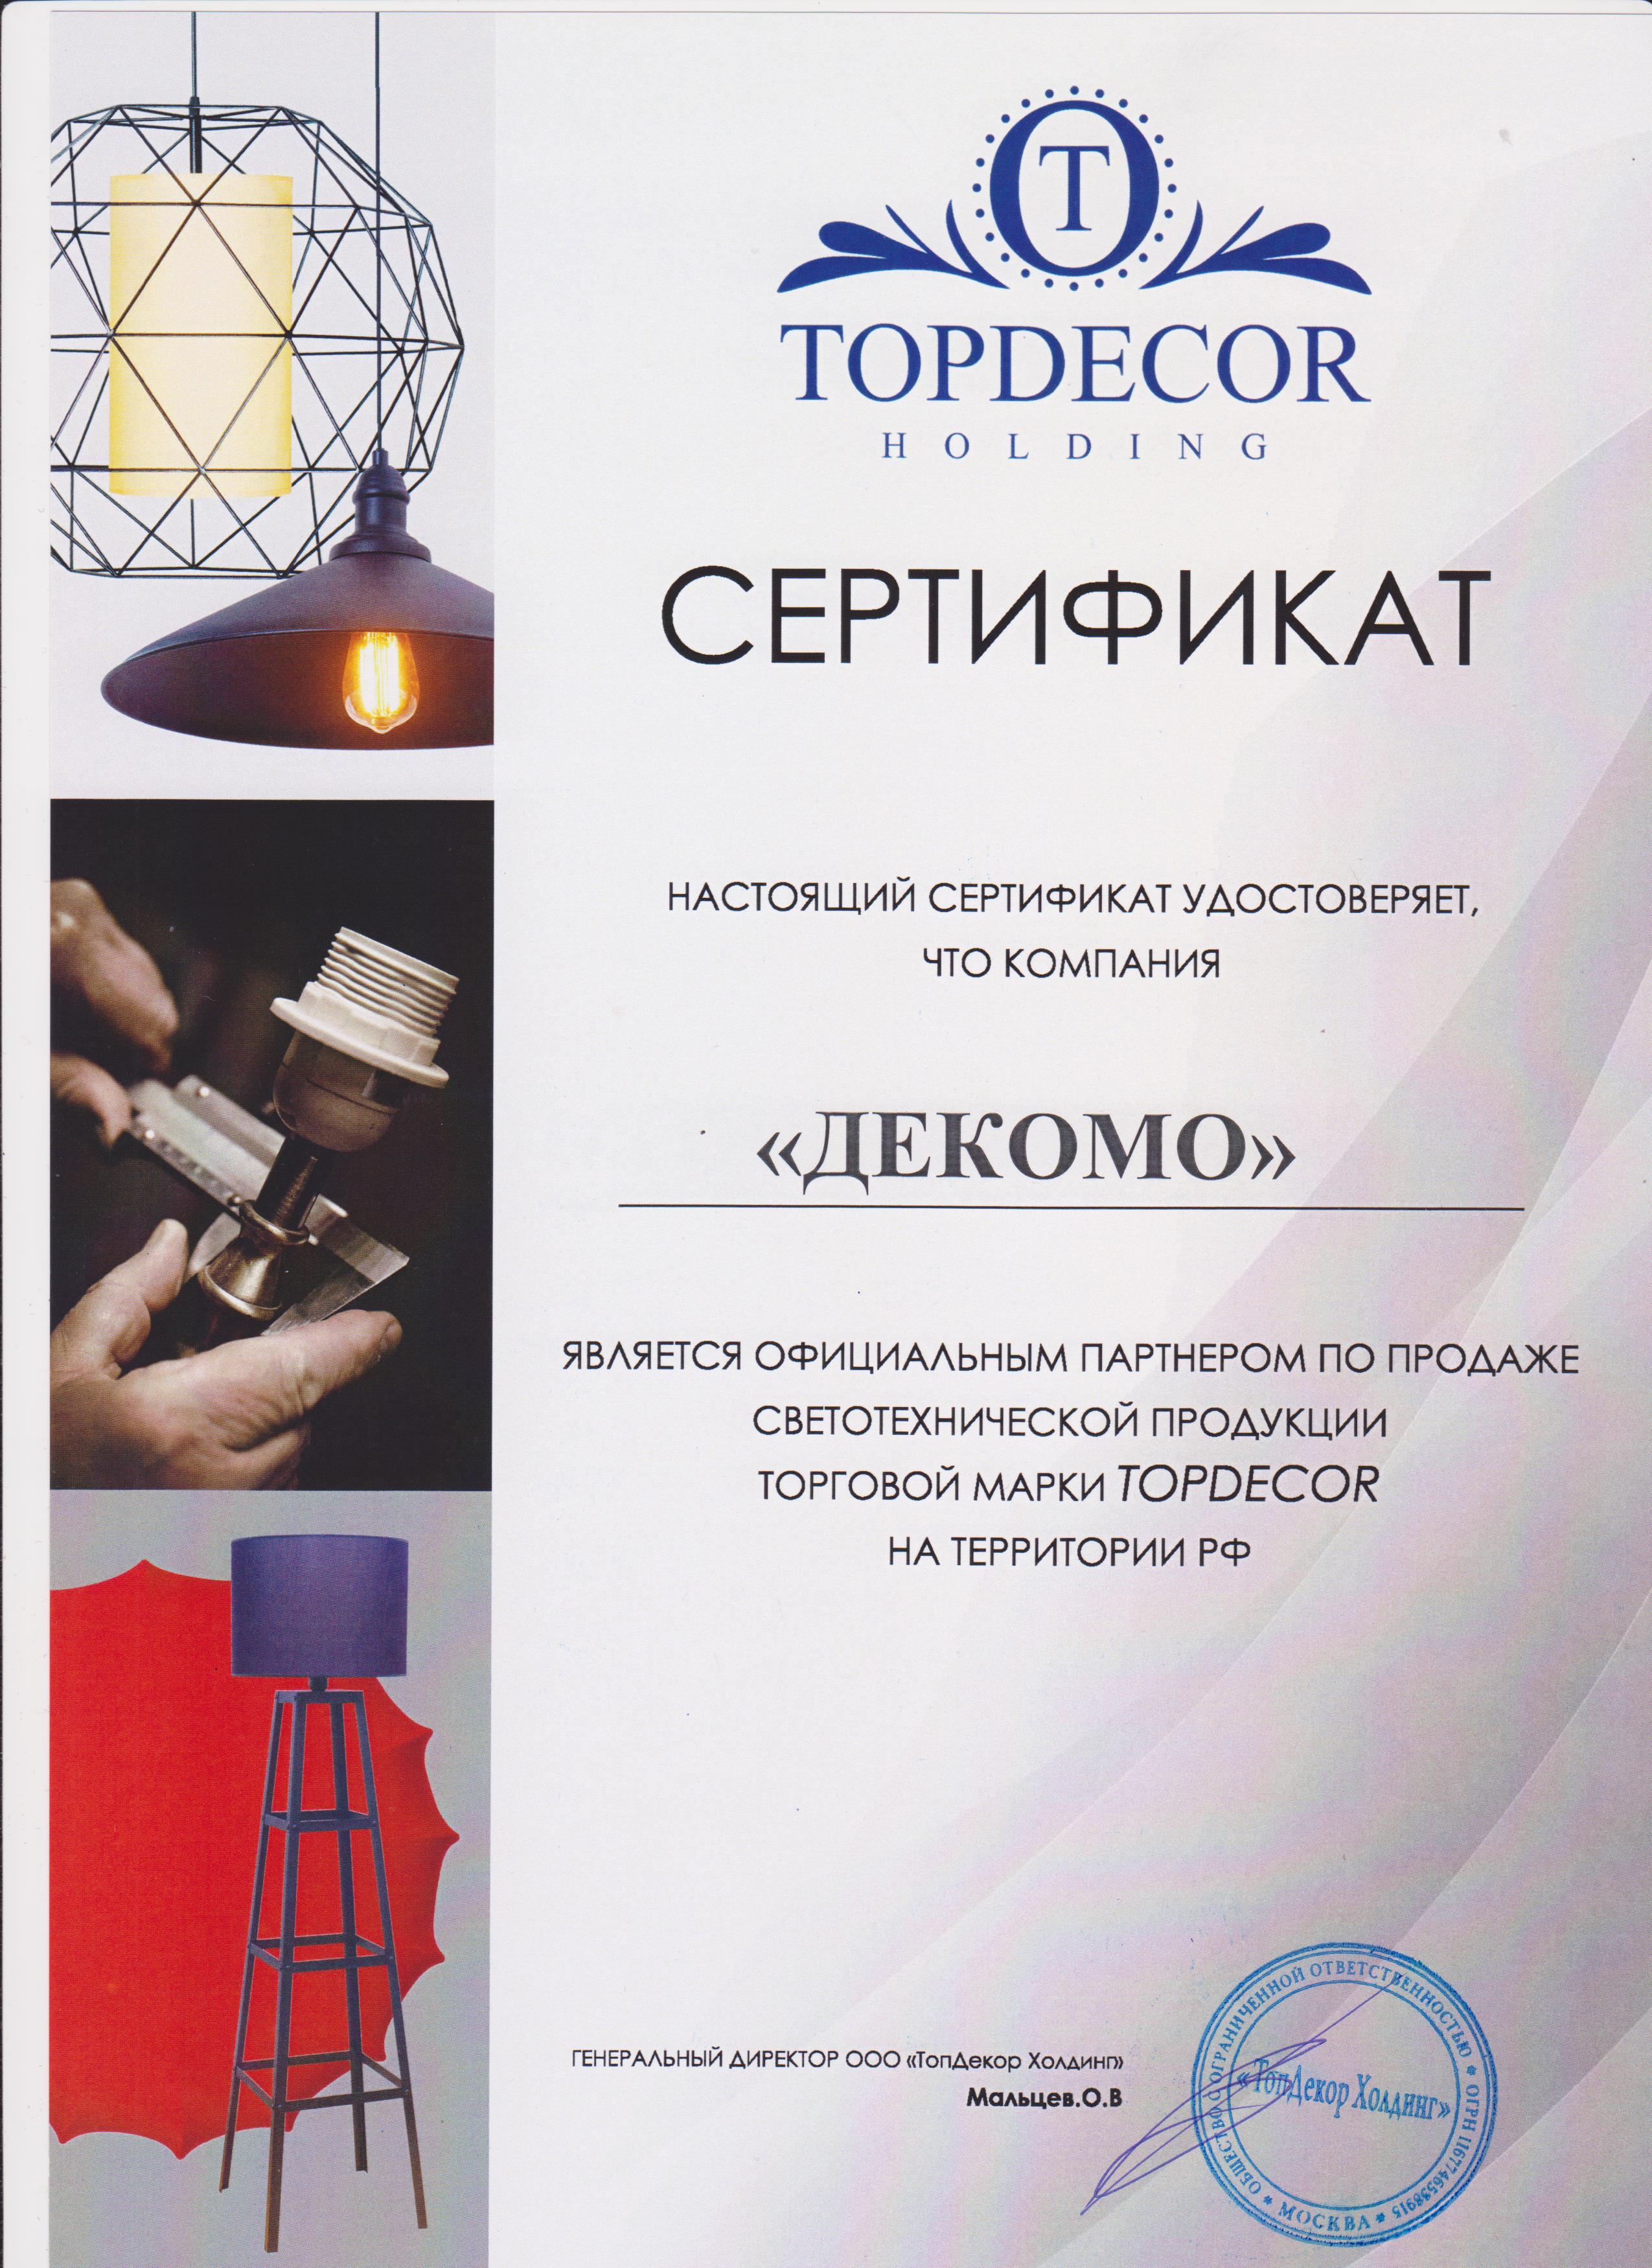 Сертификат TOP DECOR